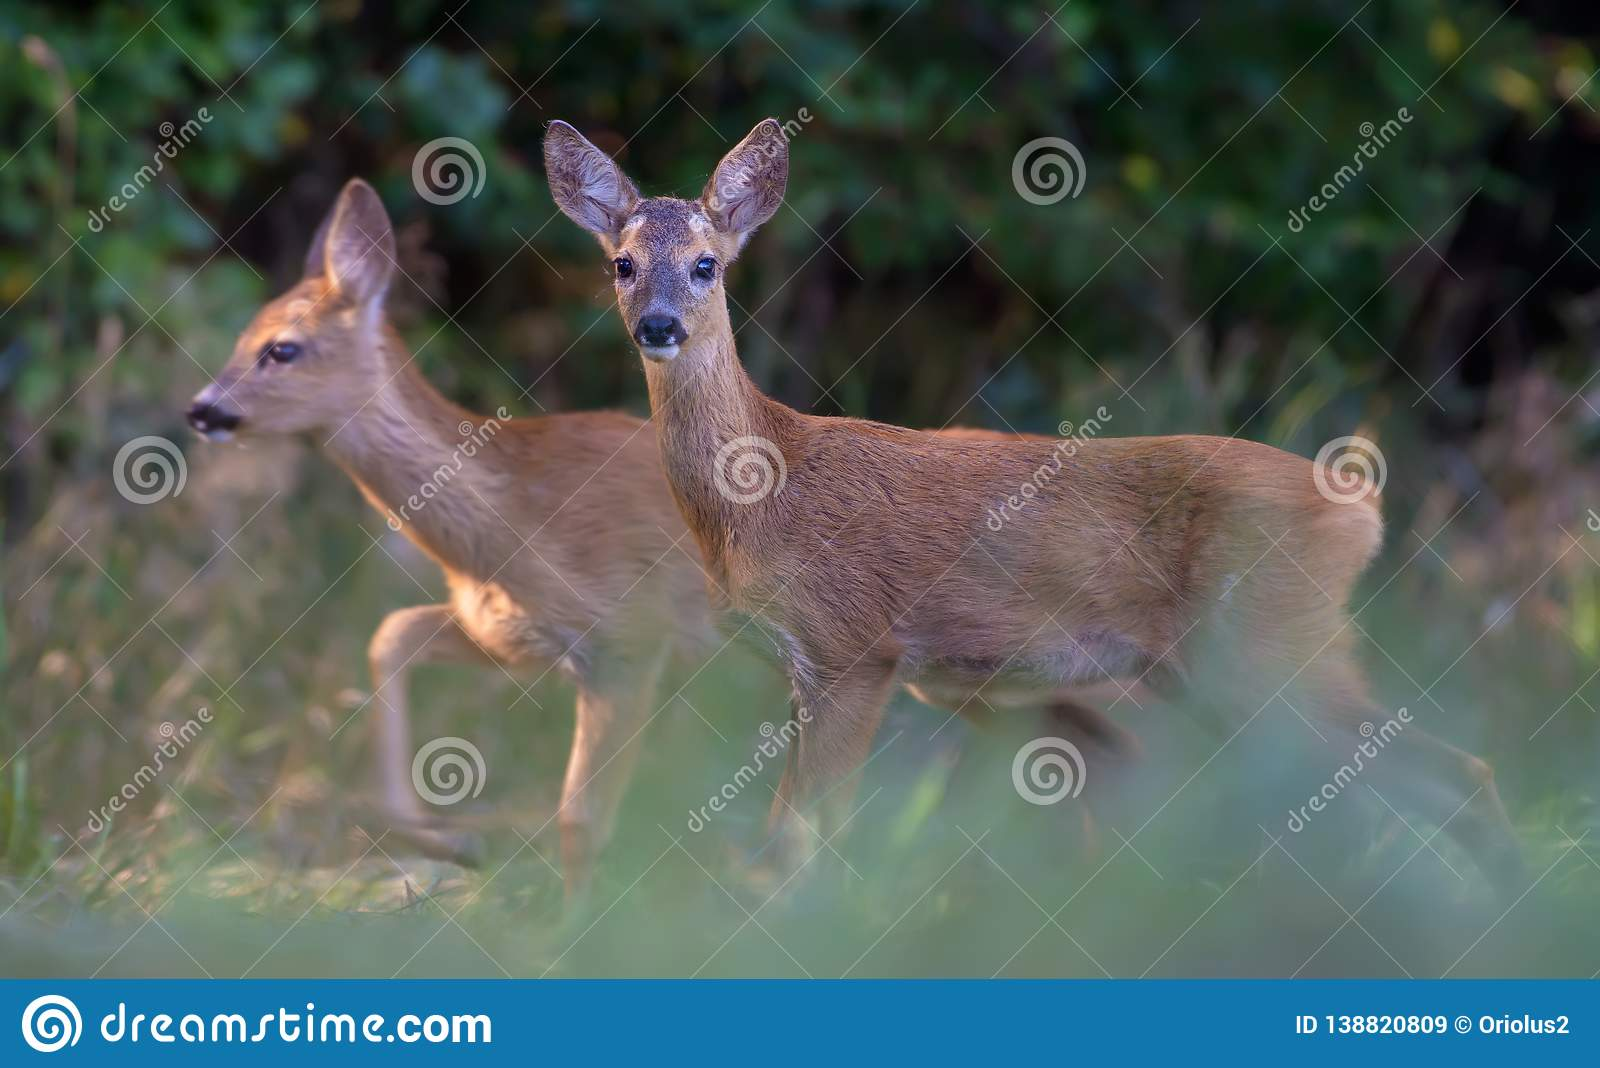 Pair of Young Roe deers walks together through grass